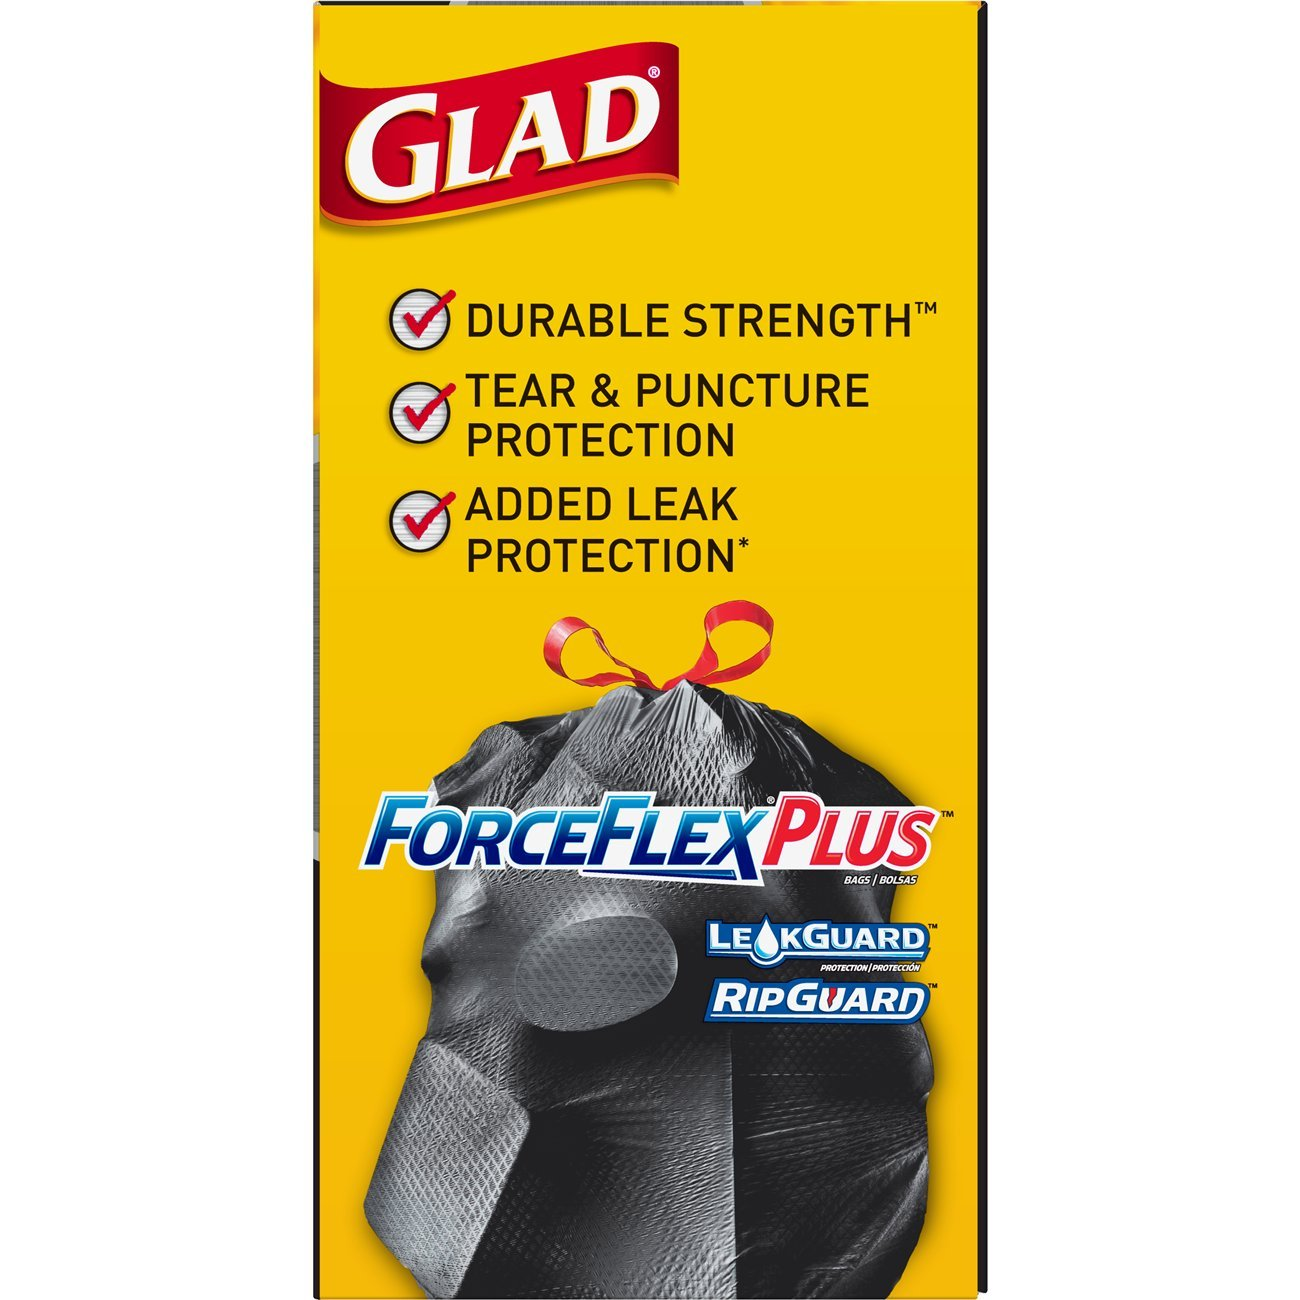 Amazon.com: Glad ForceFlexPlus Drawstring Large Trash Bags - 30 Gallon - 50 Count: Sports & Outdoors